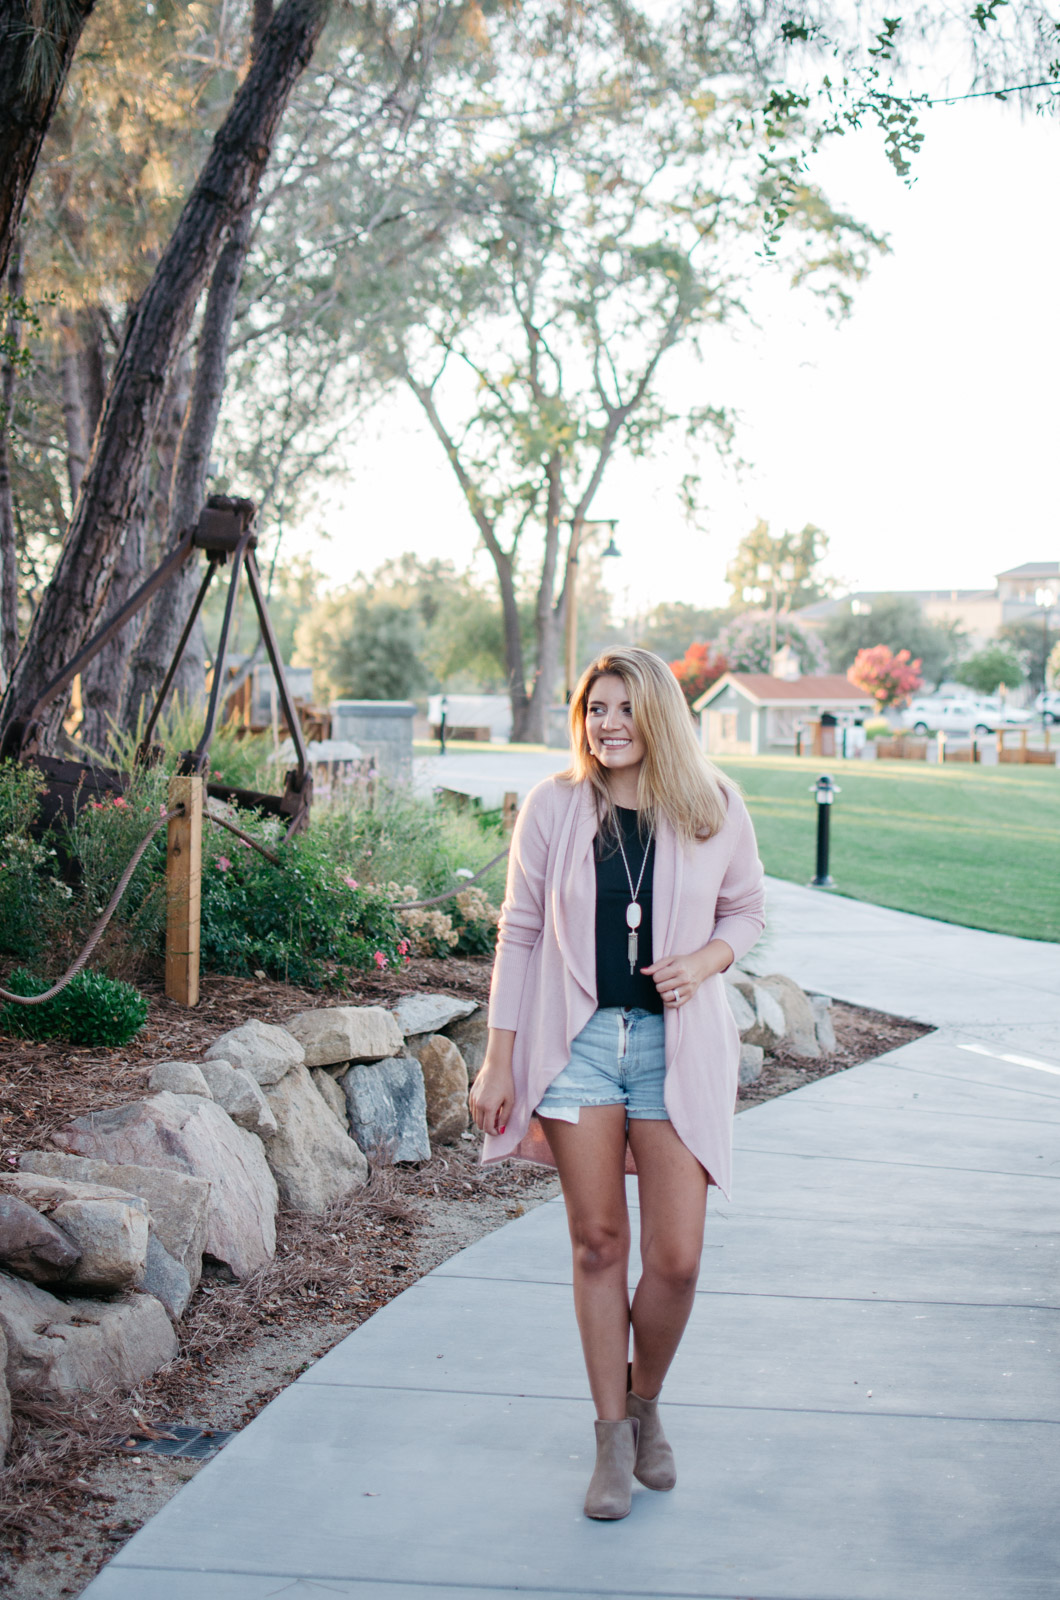 nordstrom anniversary sale outfit - how to wear a cardigan for summer | bylaurenm.com